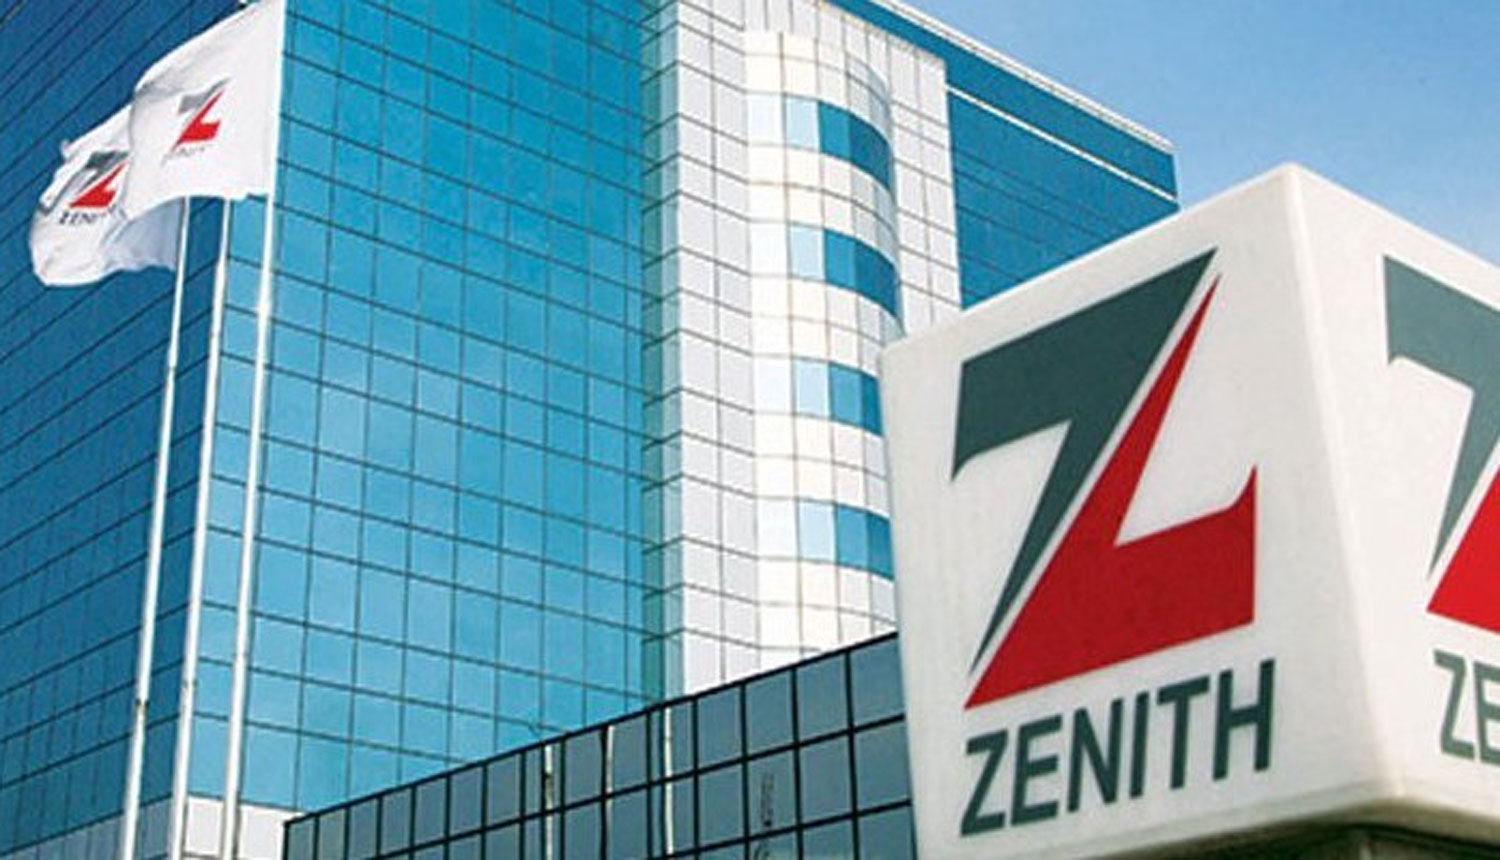 Zenith Bank ranked number 1 bank in Nigeria by Tier-1 Capital